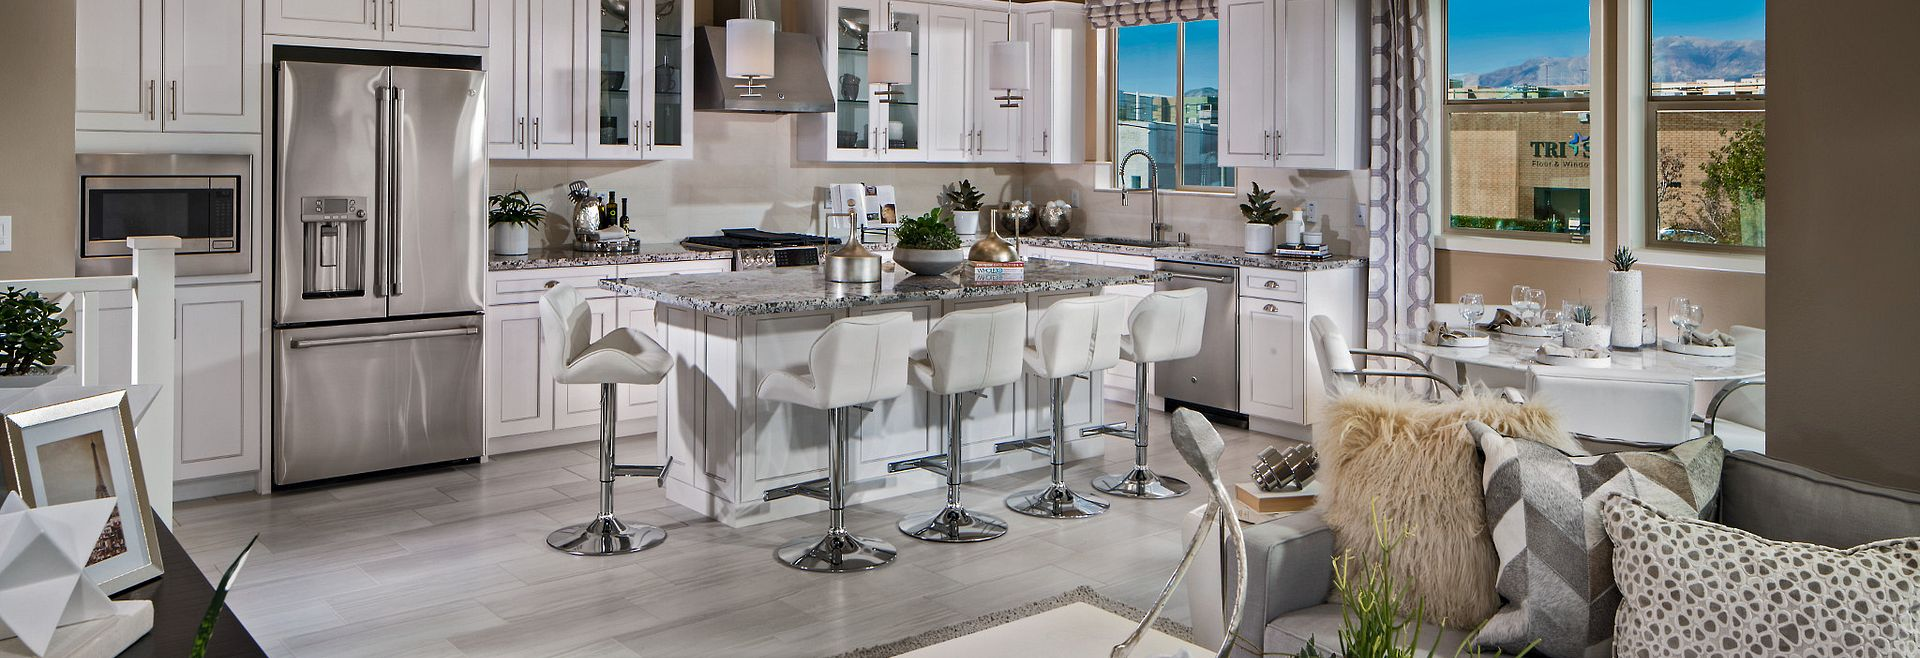 Residence 8 Kitchen with White Cabinets and Stainless Steel Appliances with Large Island